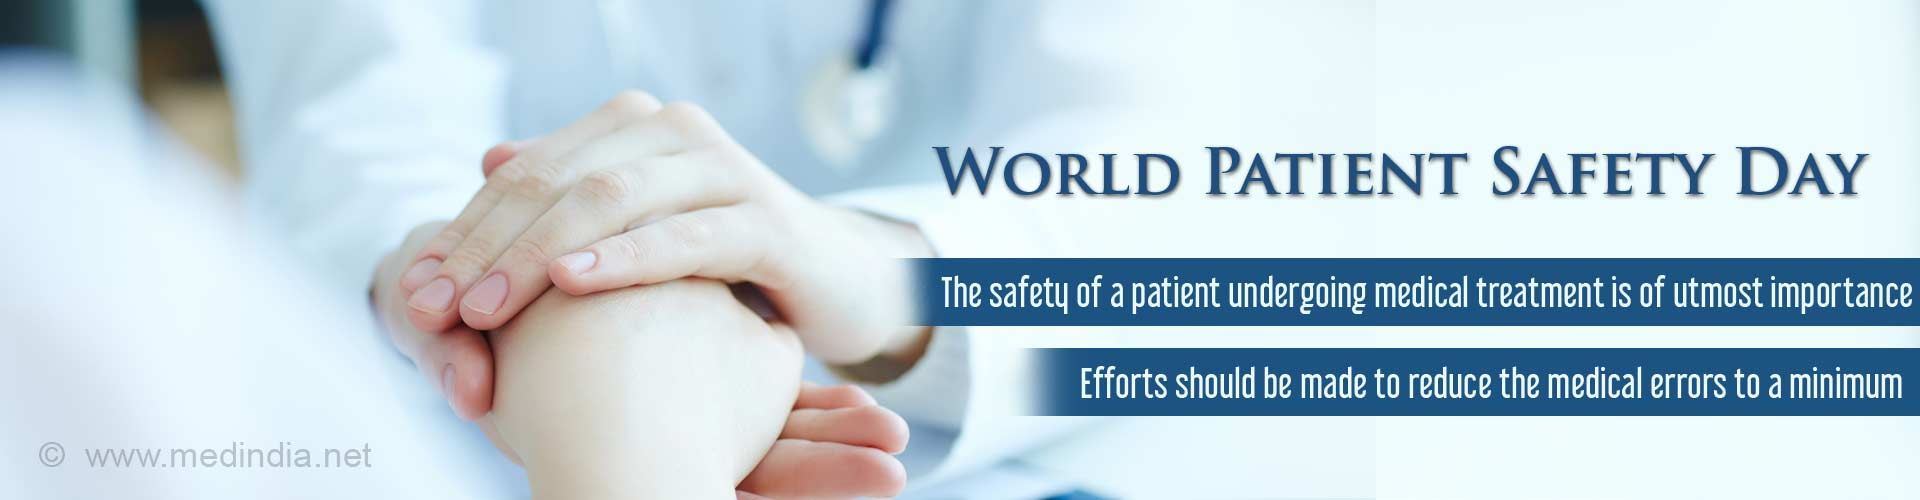 World Patient Safety Day 2017